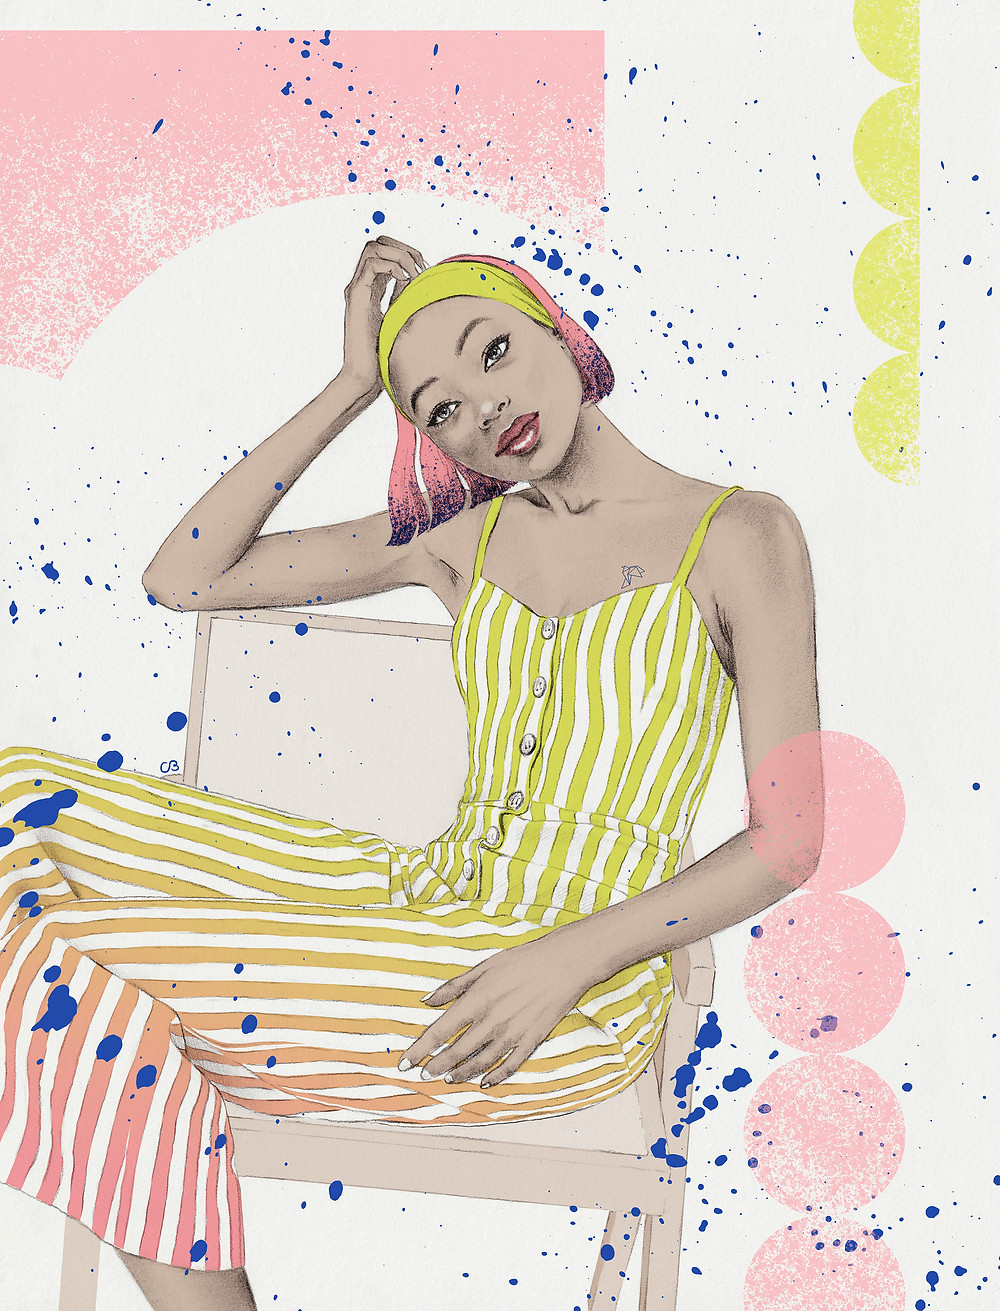 [ Serenity ] Illustration series depicts women with their sense of tranquillity and comfort.